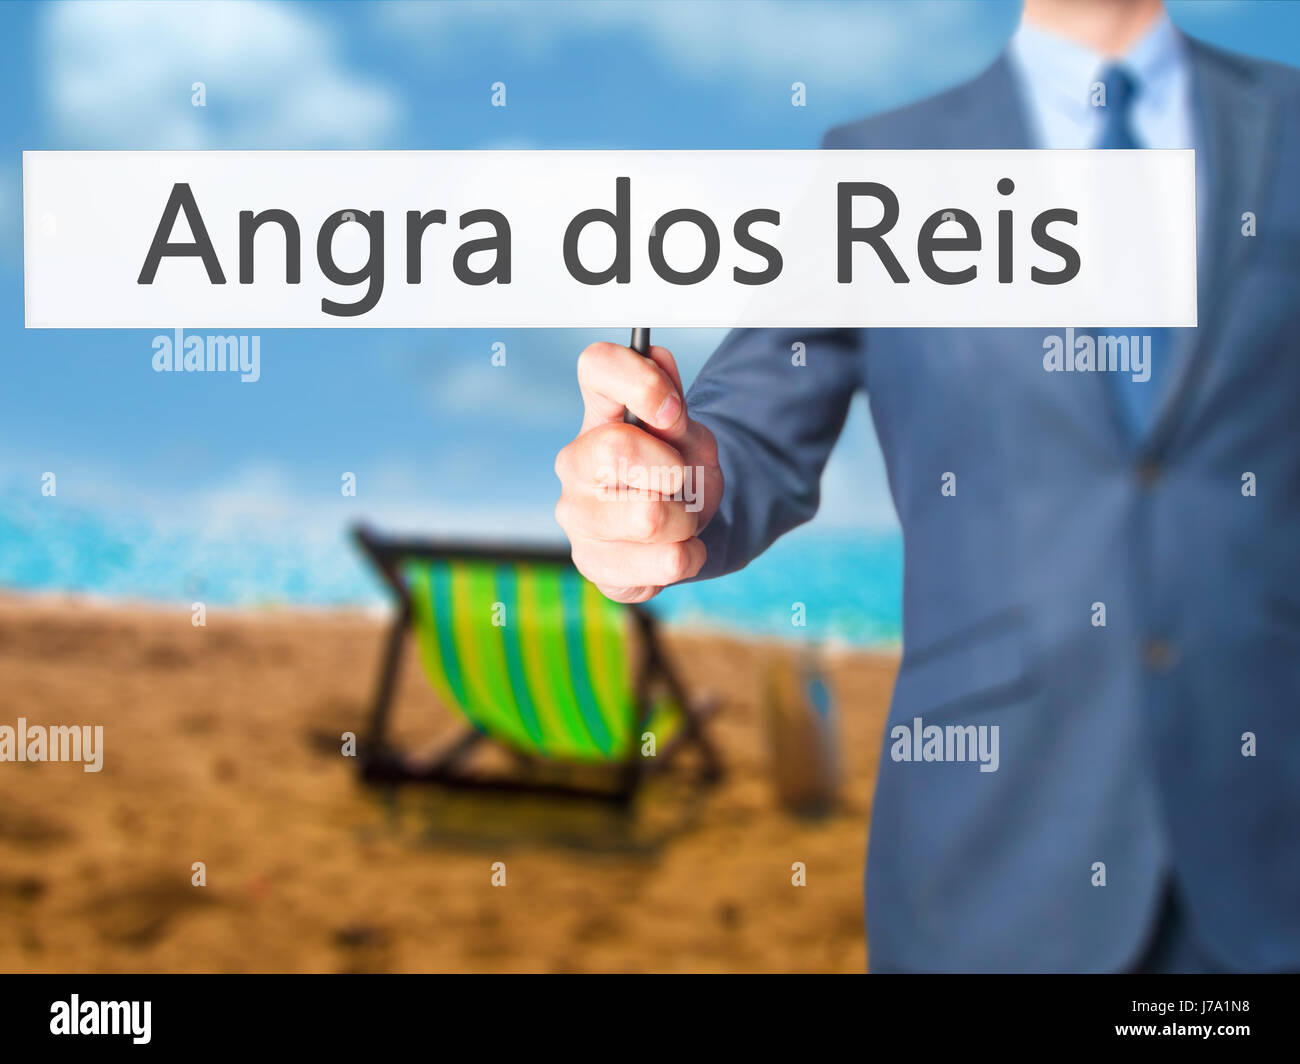 Angra dos Reis - Business man mostra segno. Business, tecnologia internet concetto. Stock Photo Immagini Stock